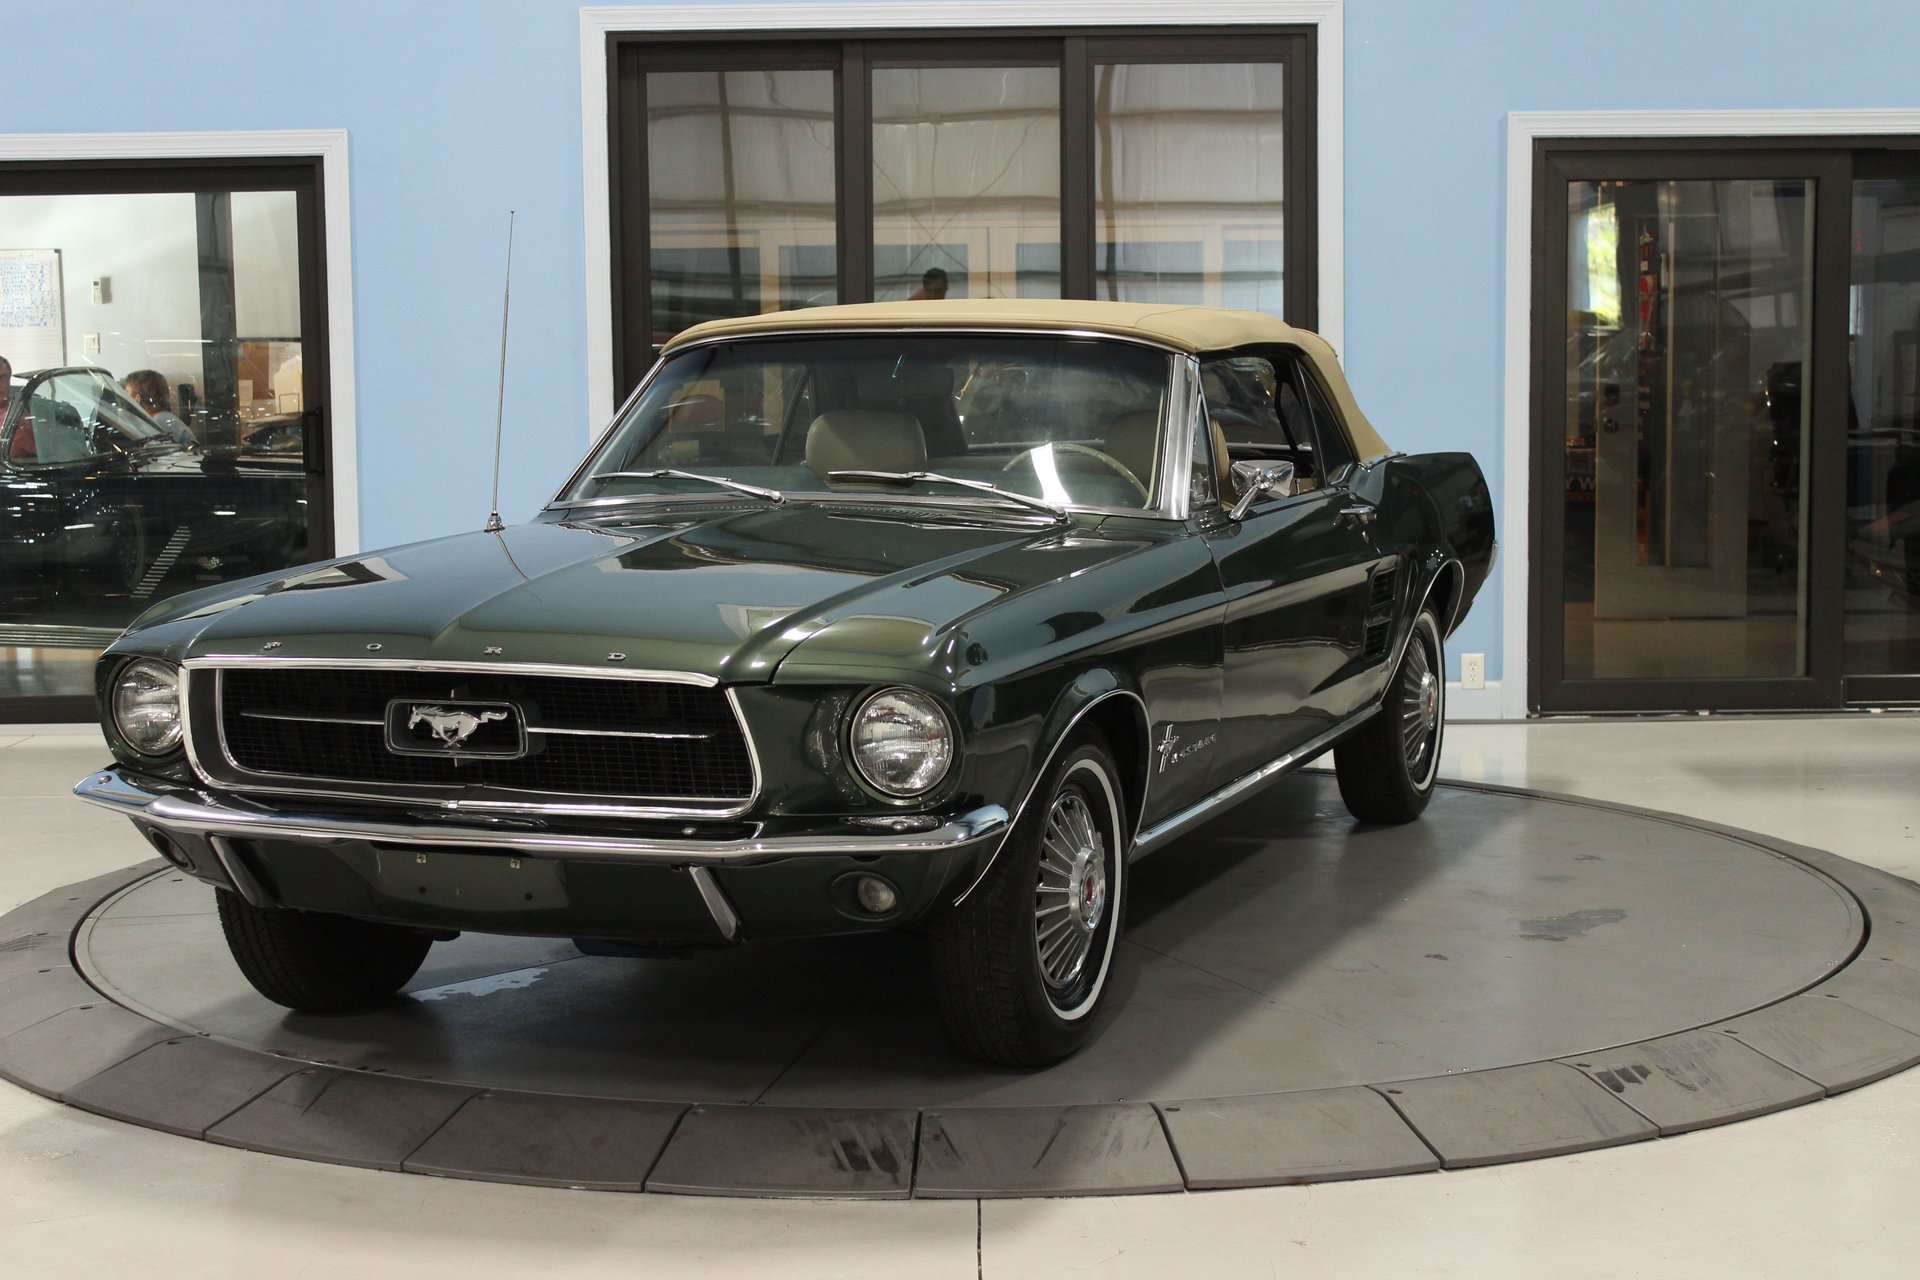 1967 Ford Mustang Convertible Classic Cars Used Cars For Sale In Tampa Fl